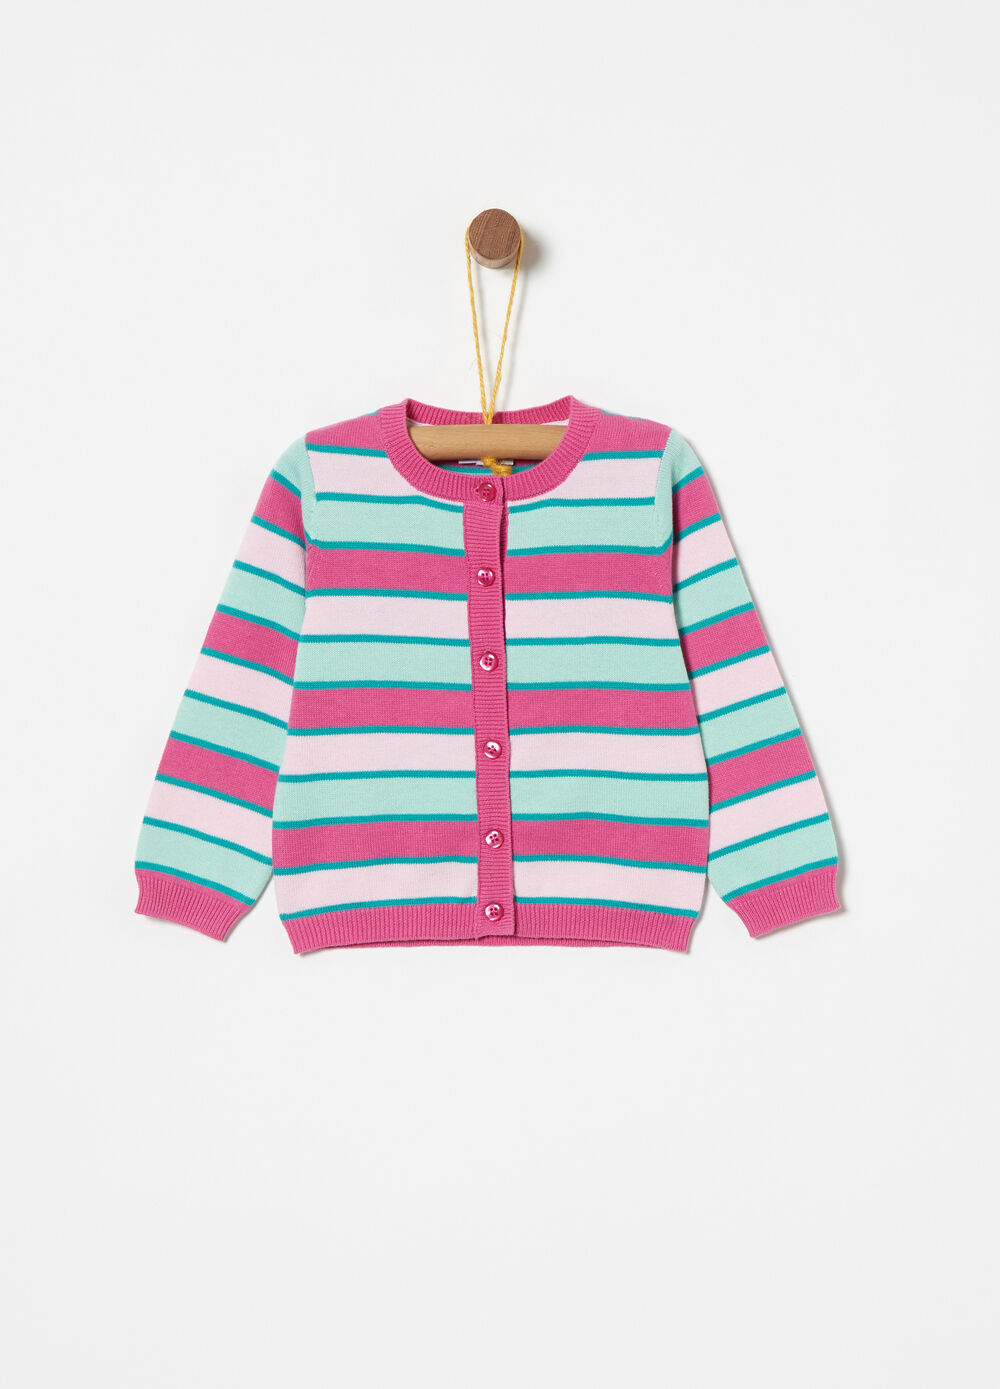 Multi-coloured cardigan in 100% cotton